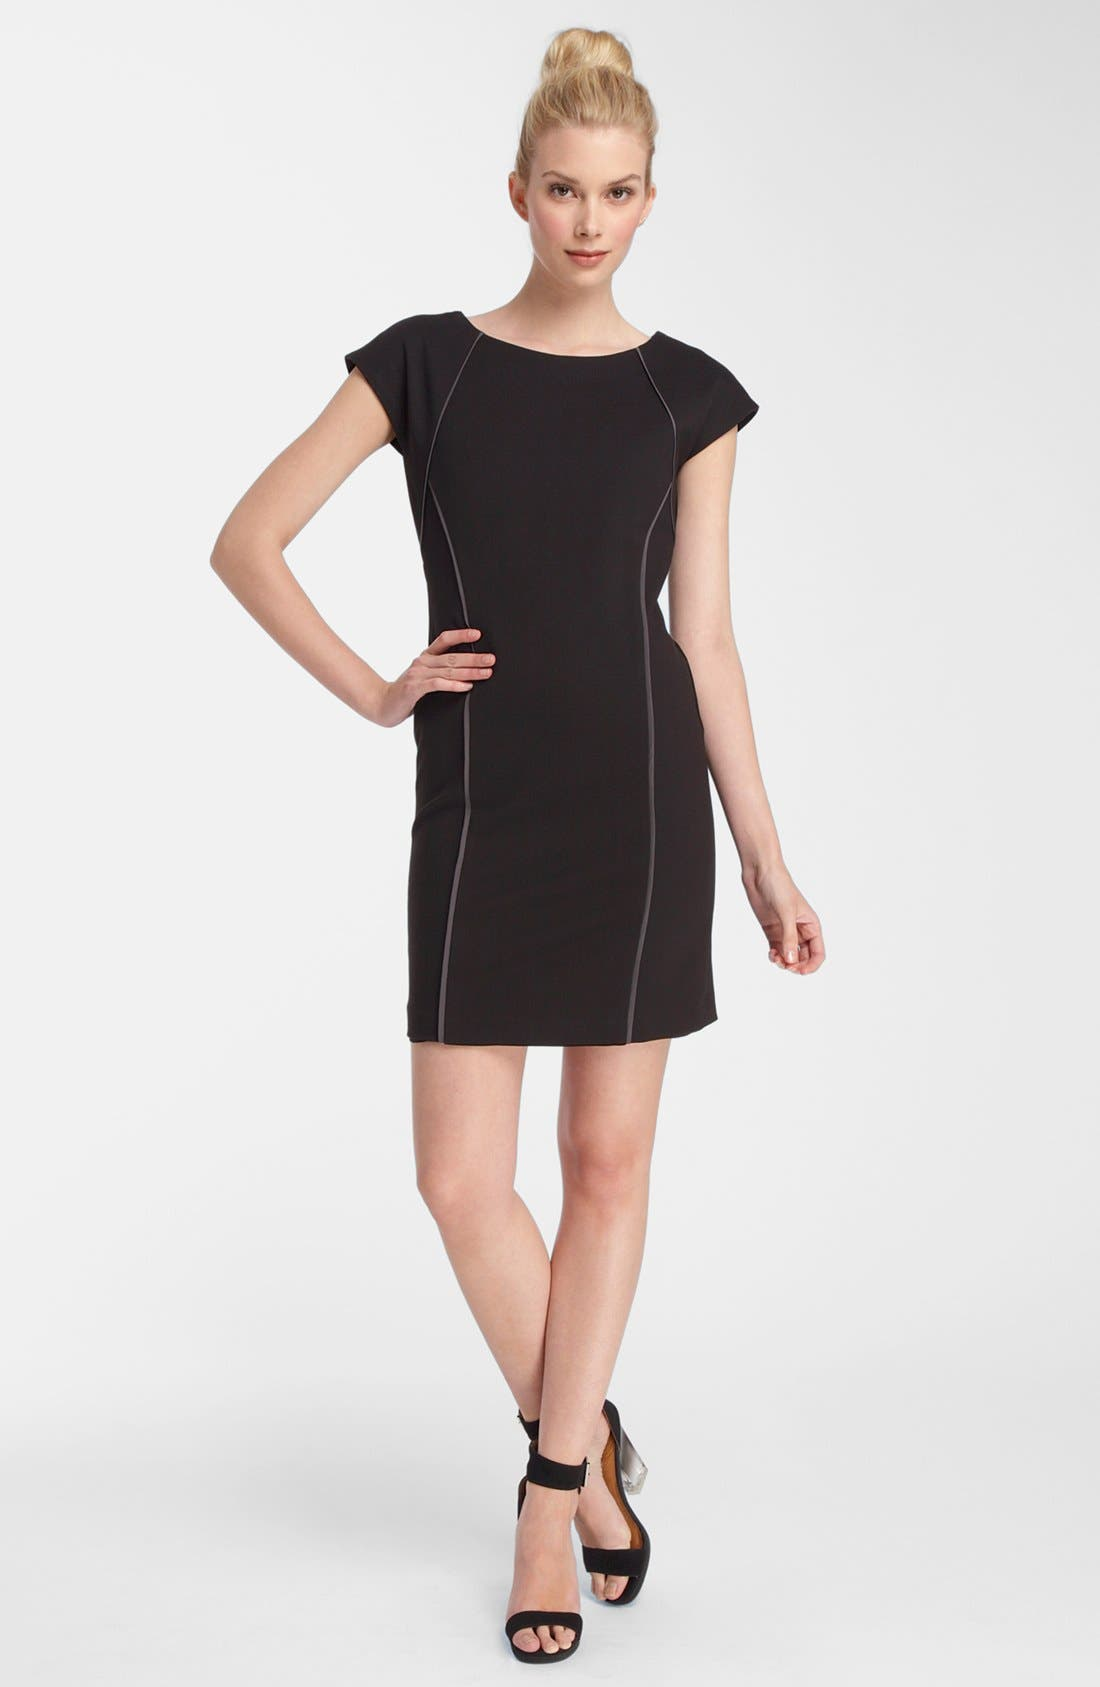 Alternate Image 1 Selected - Catherine Catherine Malandrino Piped Ponte Knit Dress